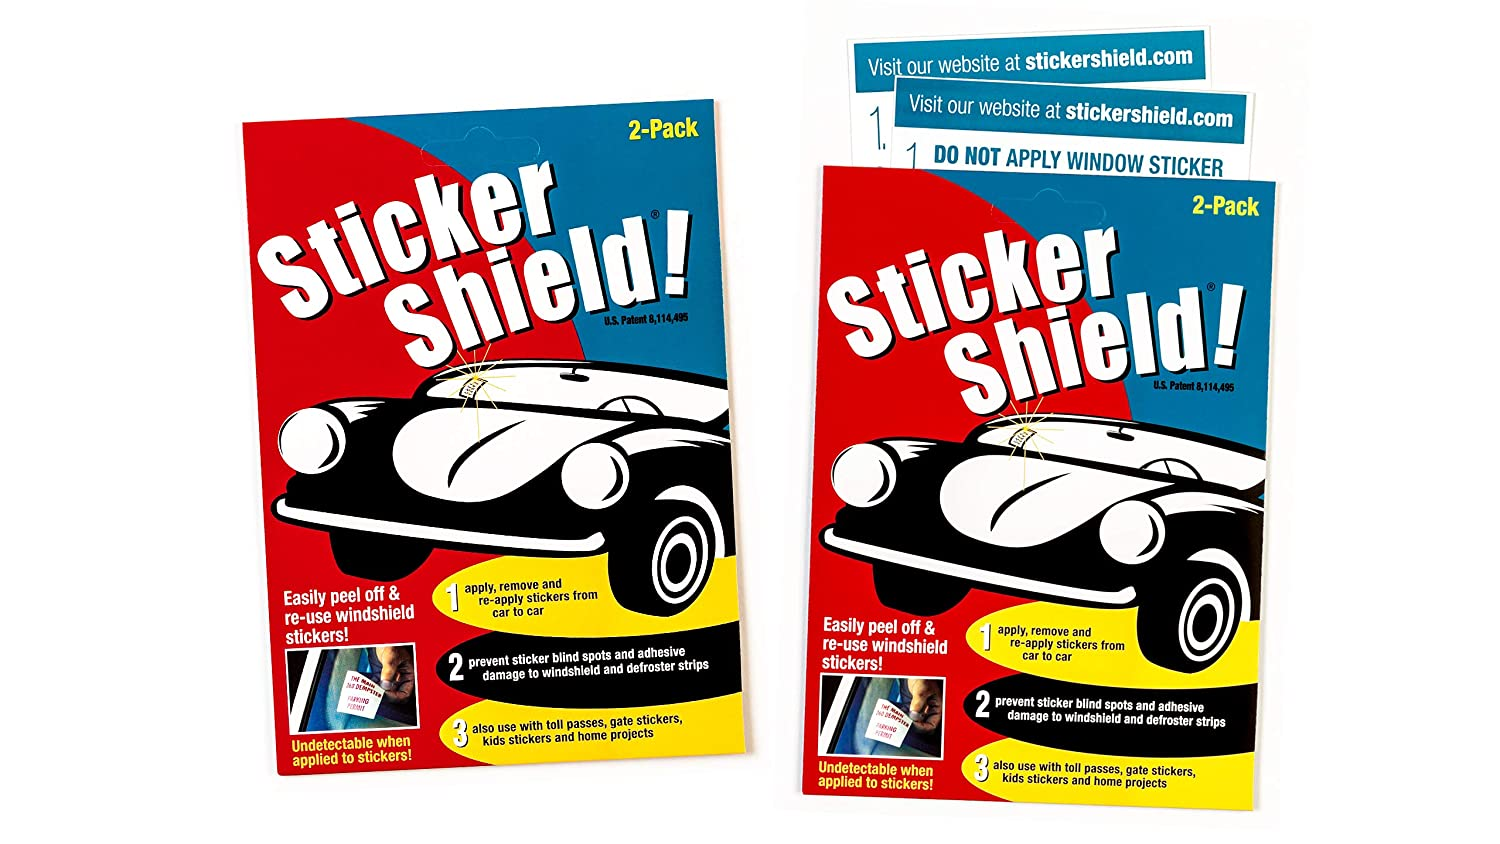 Sticker Shield SSMP11122-1 Transparent 1 Pack Windshield Sticker Easy Removal and Re-Application Car-4 inch x 6 inch 2 Total Pack of 2 Sheets